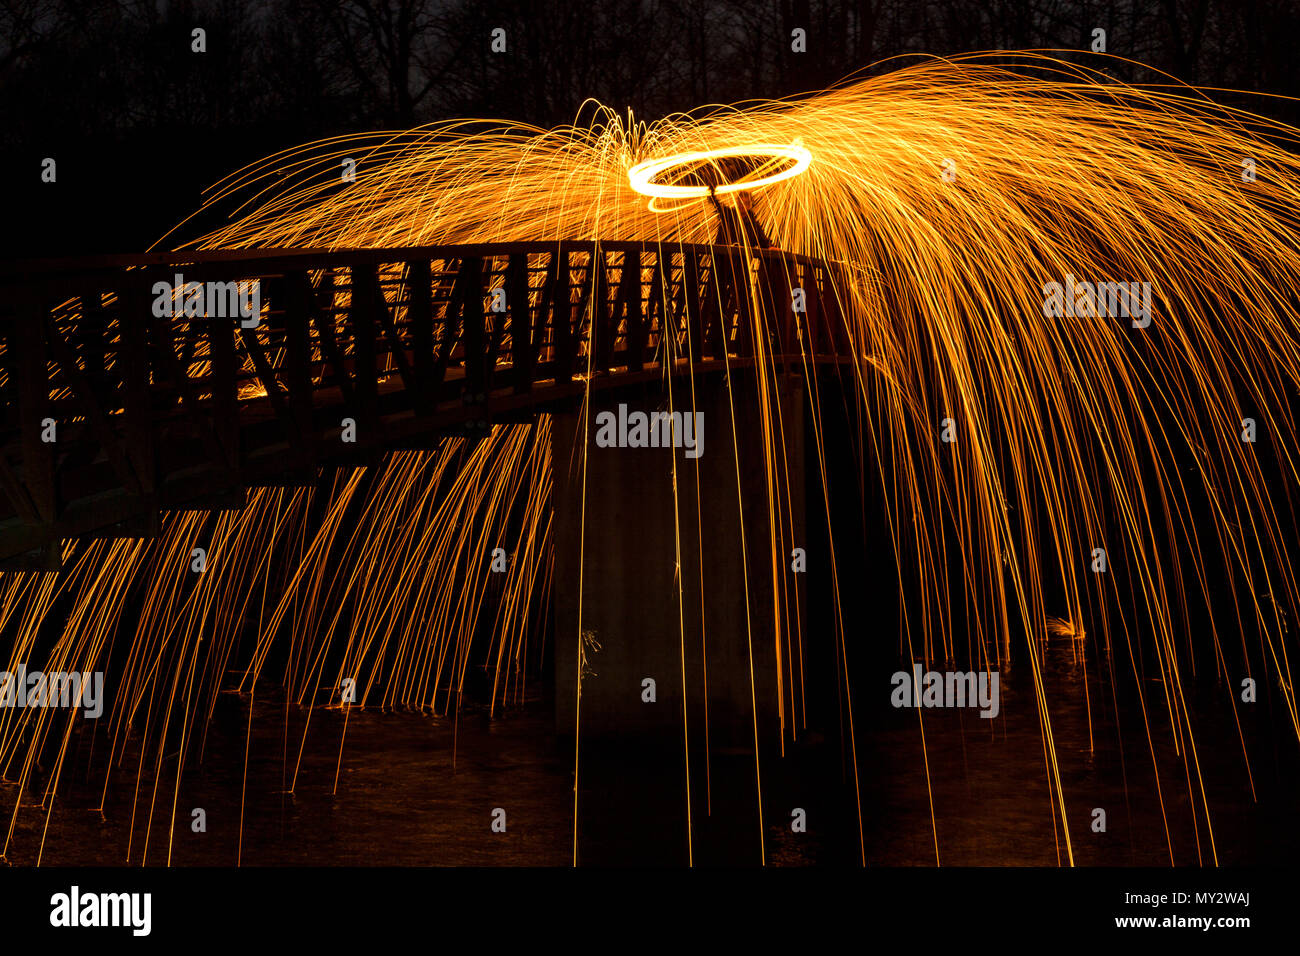 Light painting at night whirling steel wool burning at the end of a rope. - Stock Image